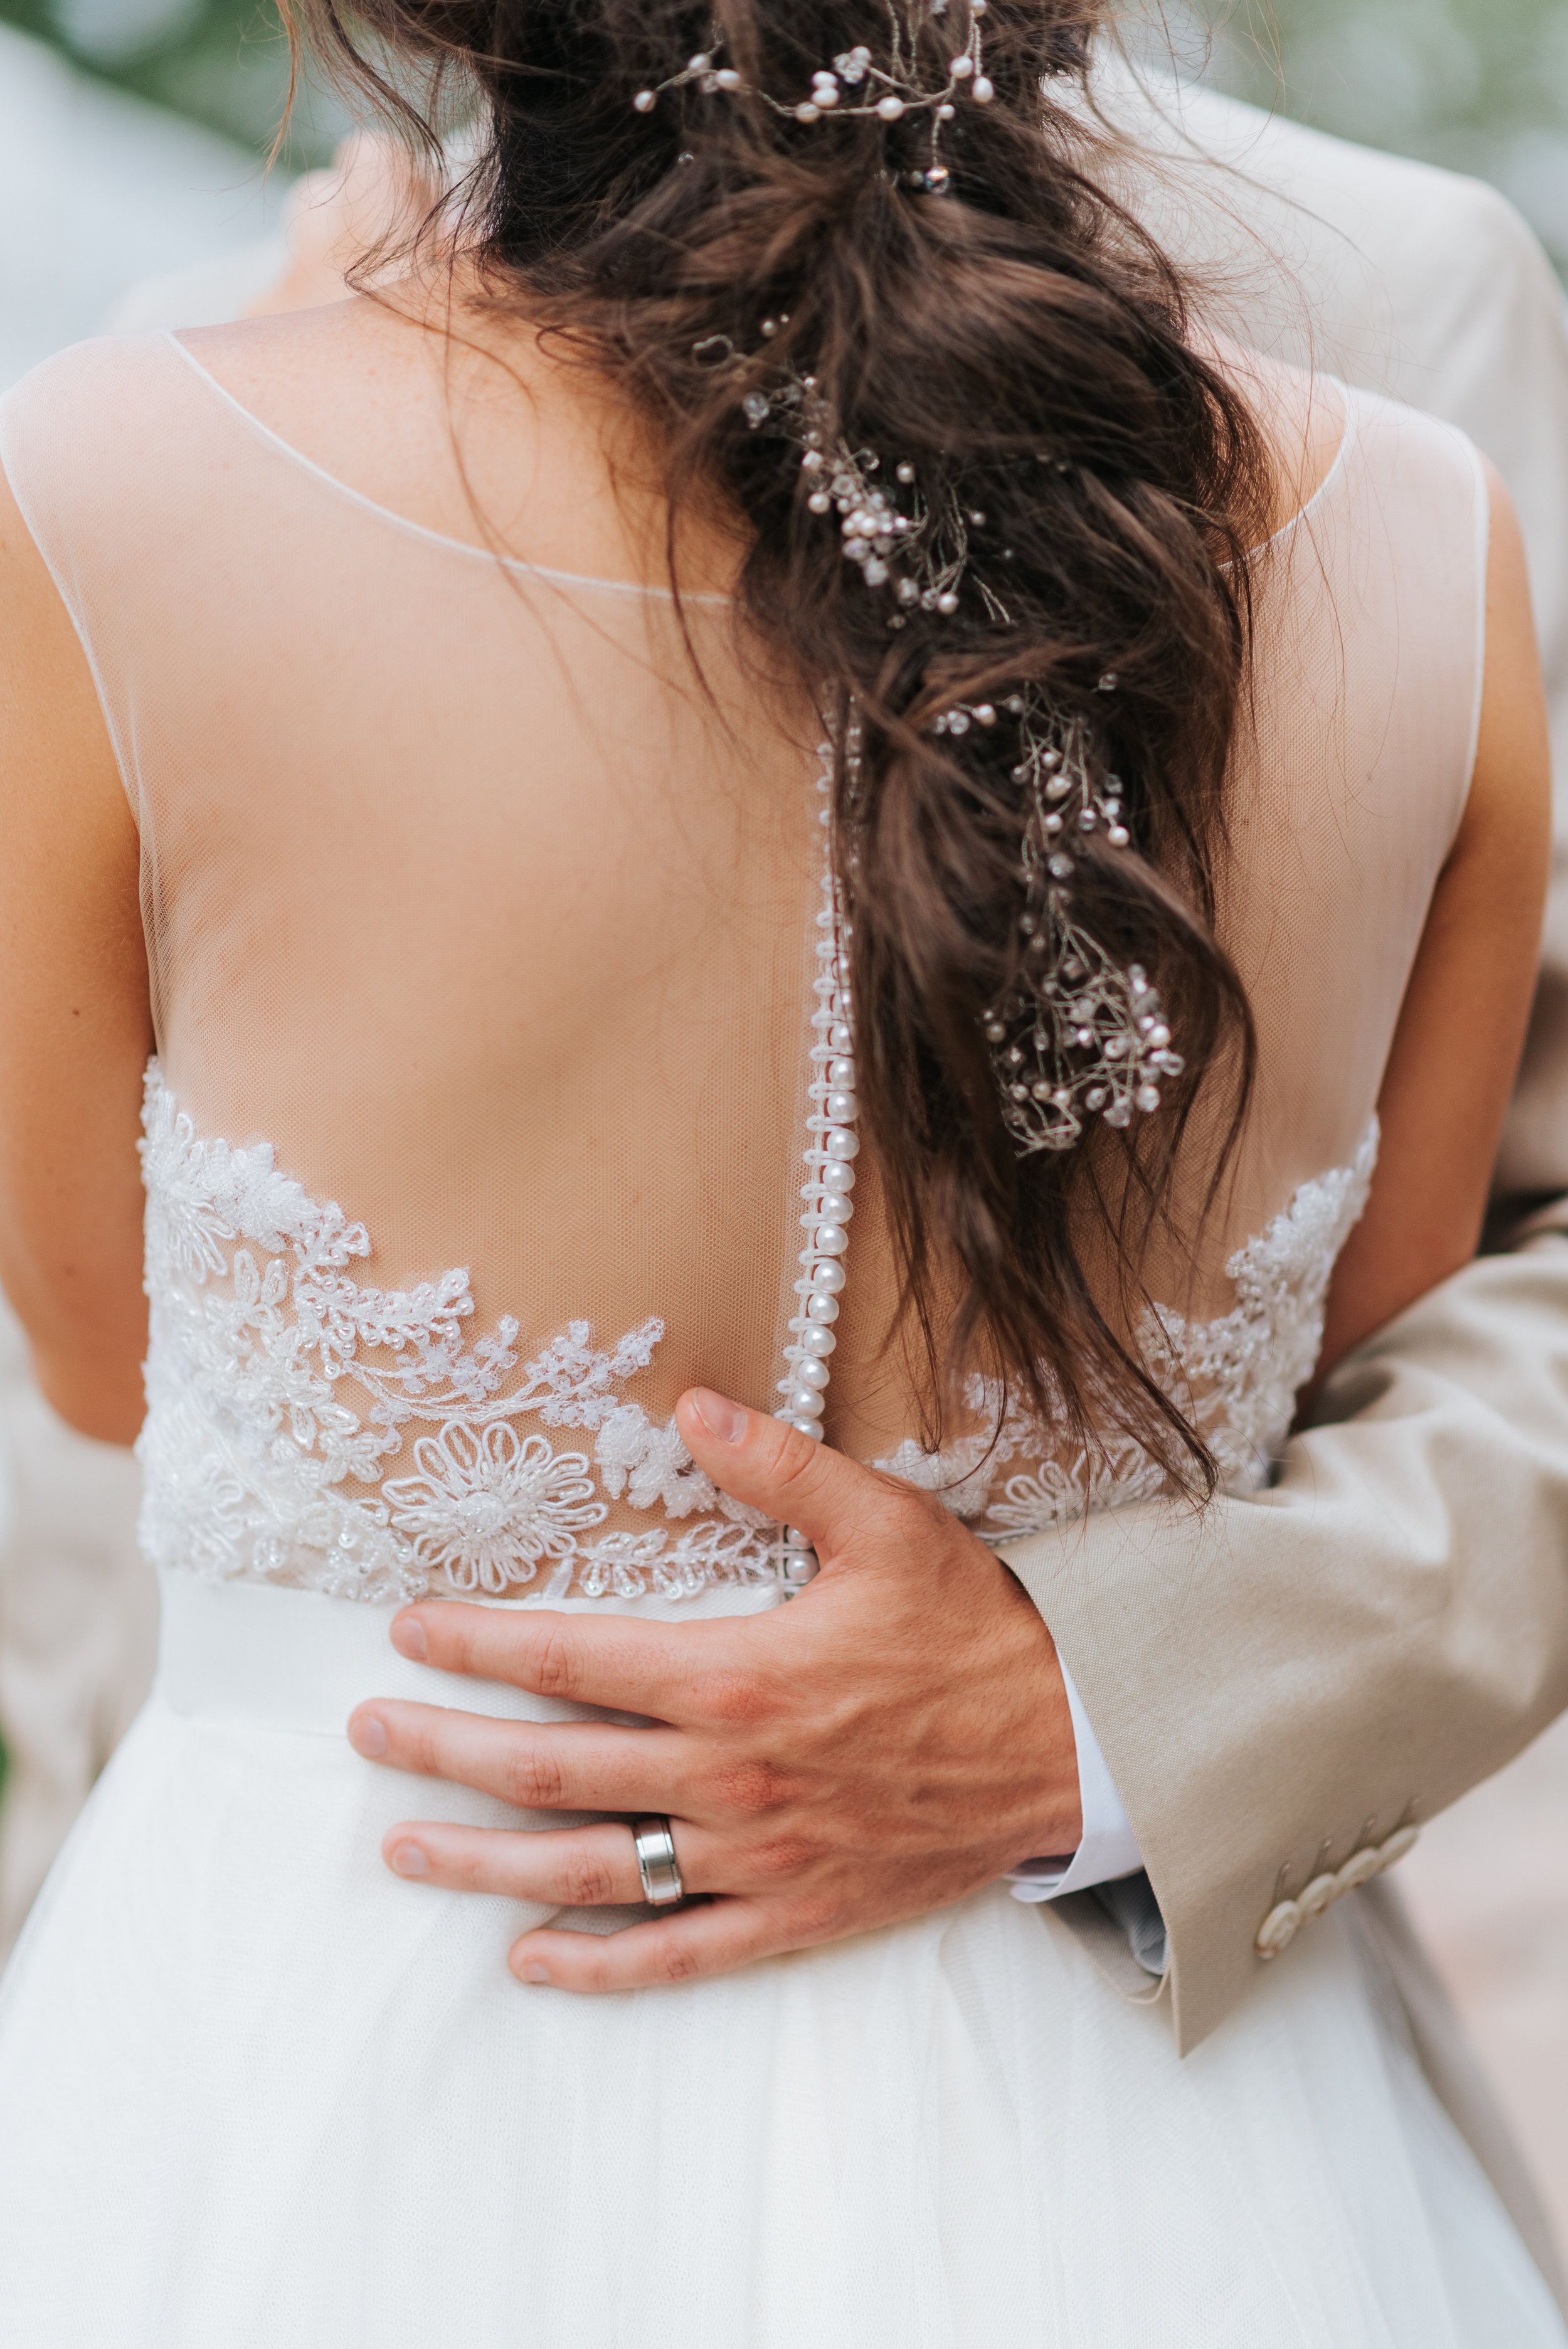 Bridal Hair & Make-Up - hairtrial.........................................$100+day of.....................................$125+make-uptrial.........................................$100+day of.....................................$100+Strip lashes included